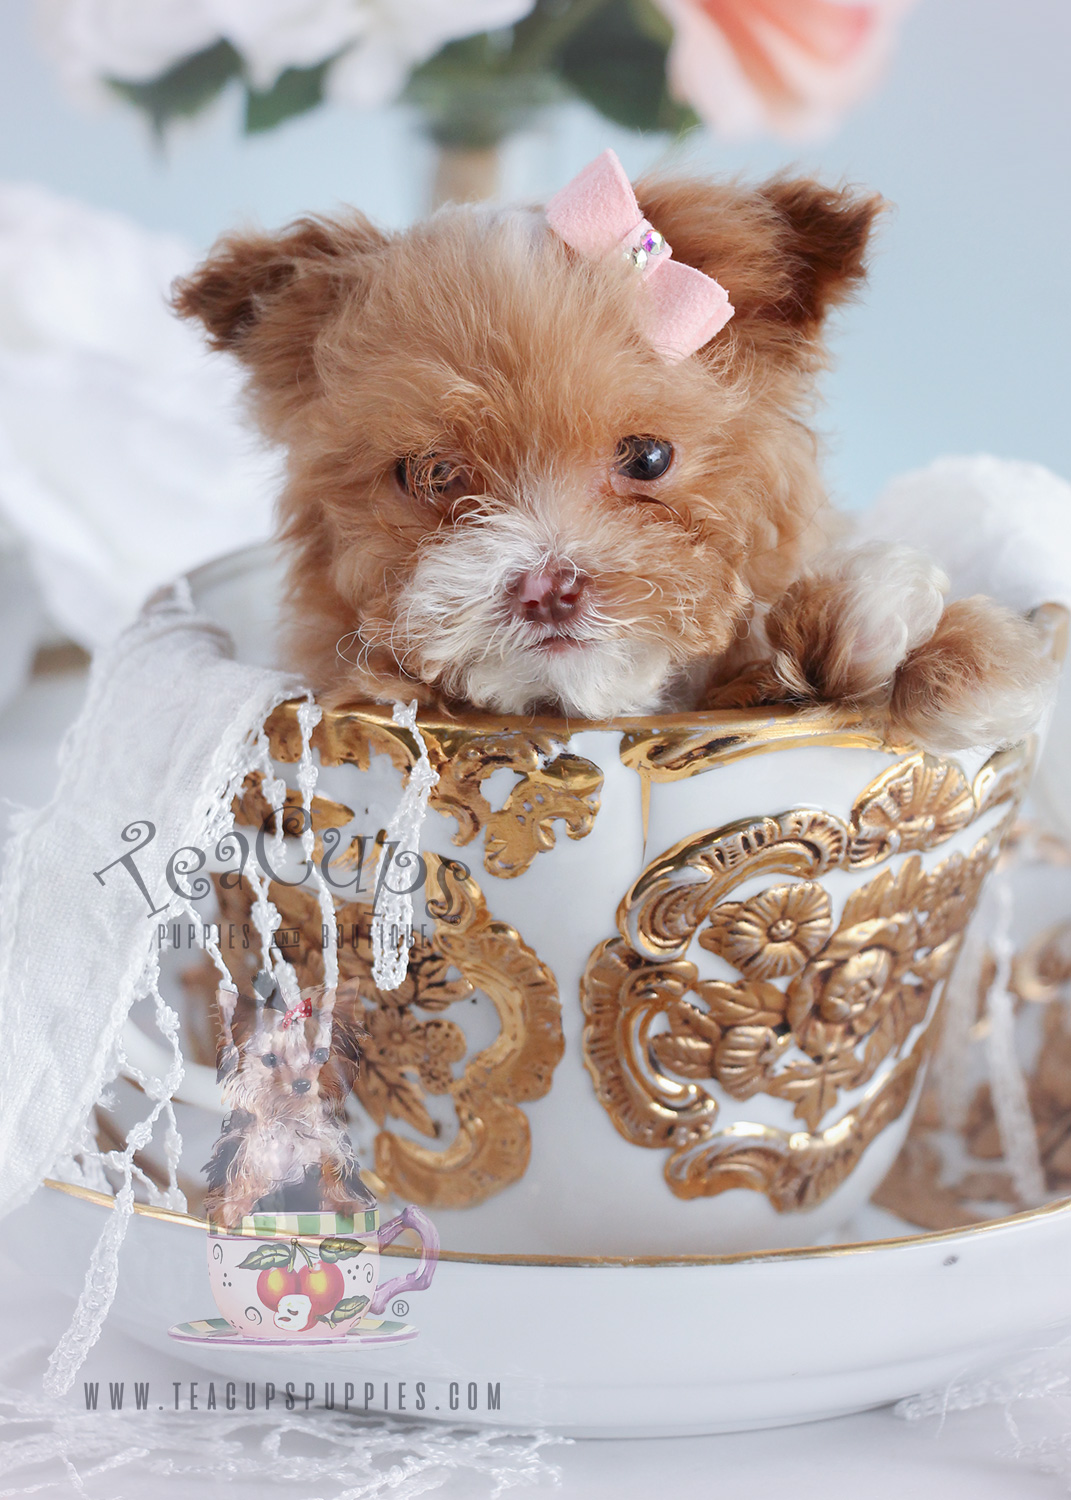 Micro Teacup Poodle Puppy For Sale#142